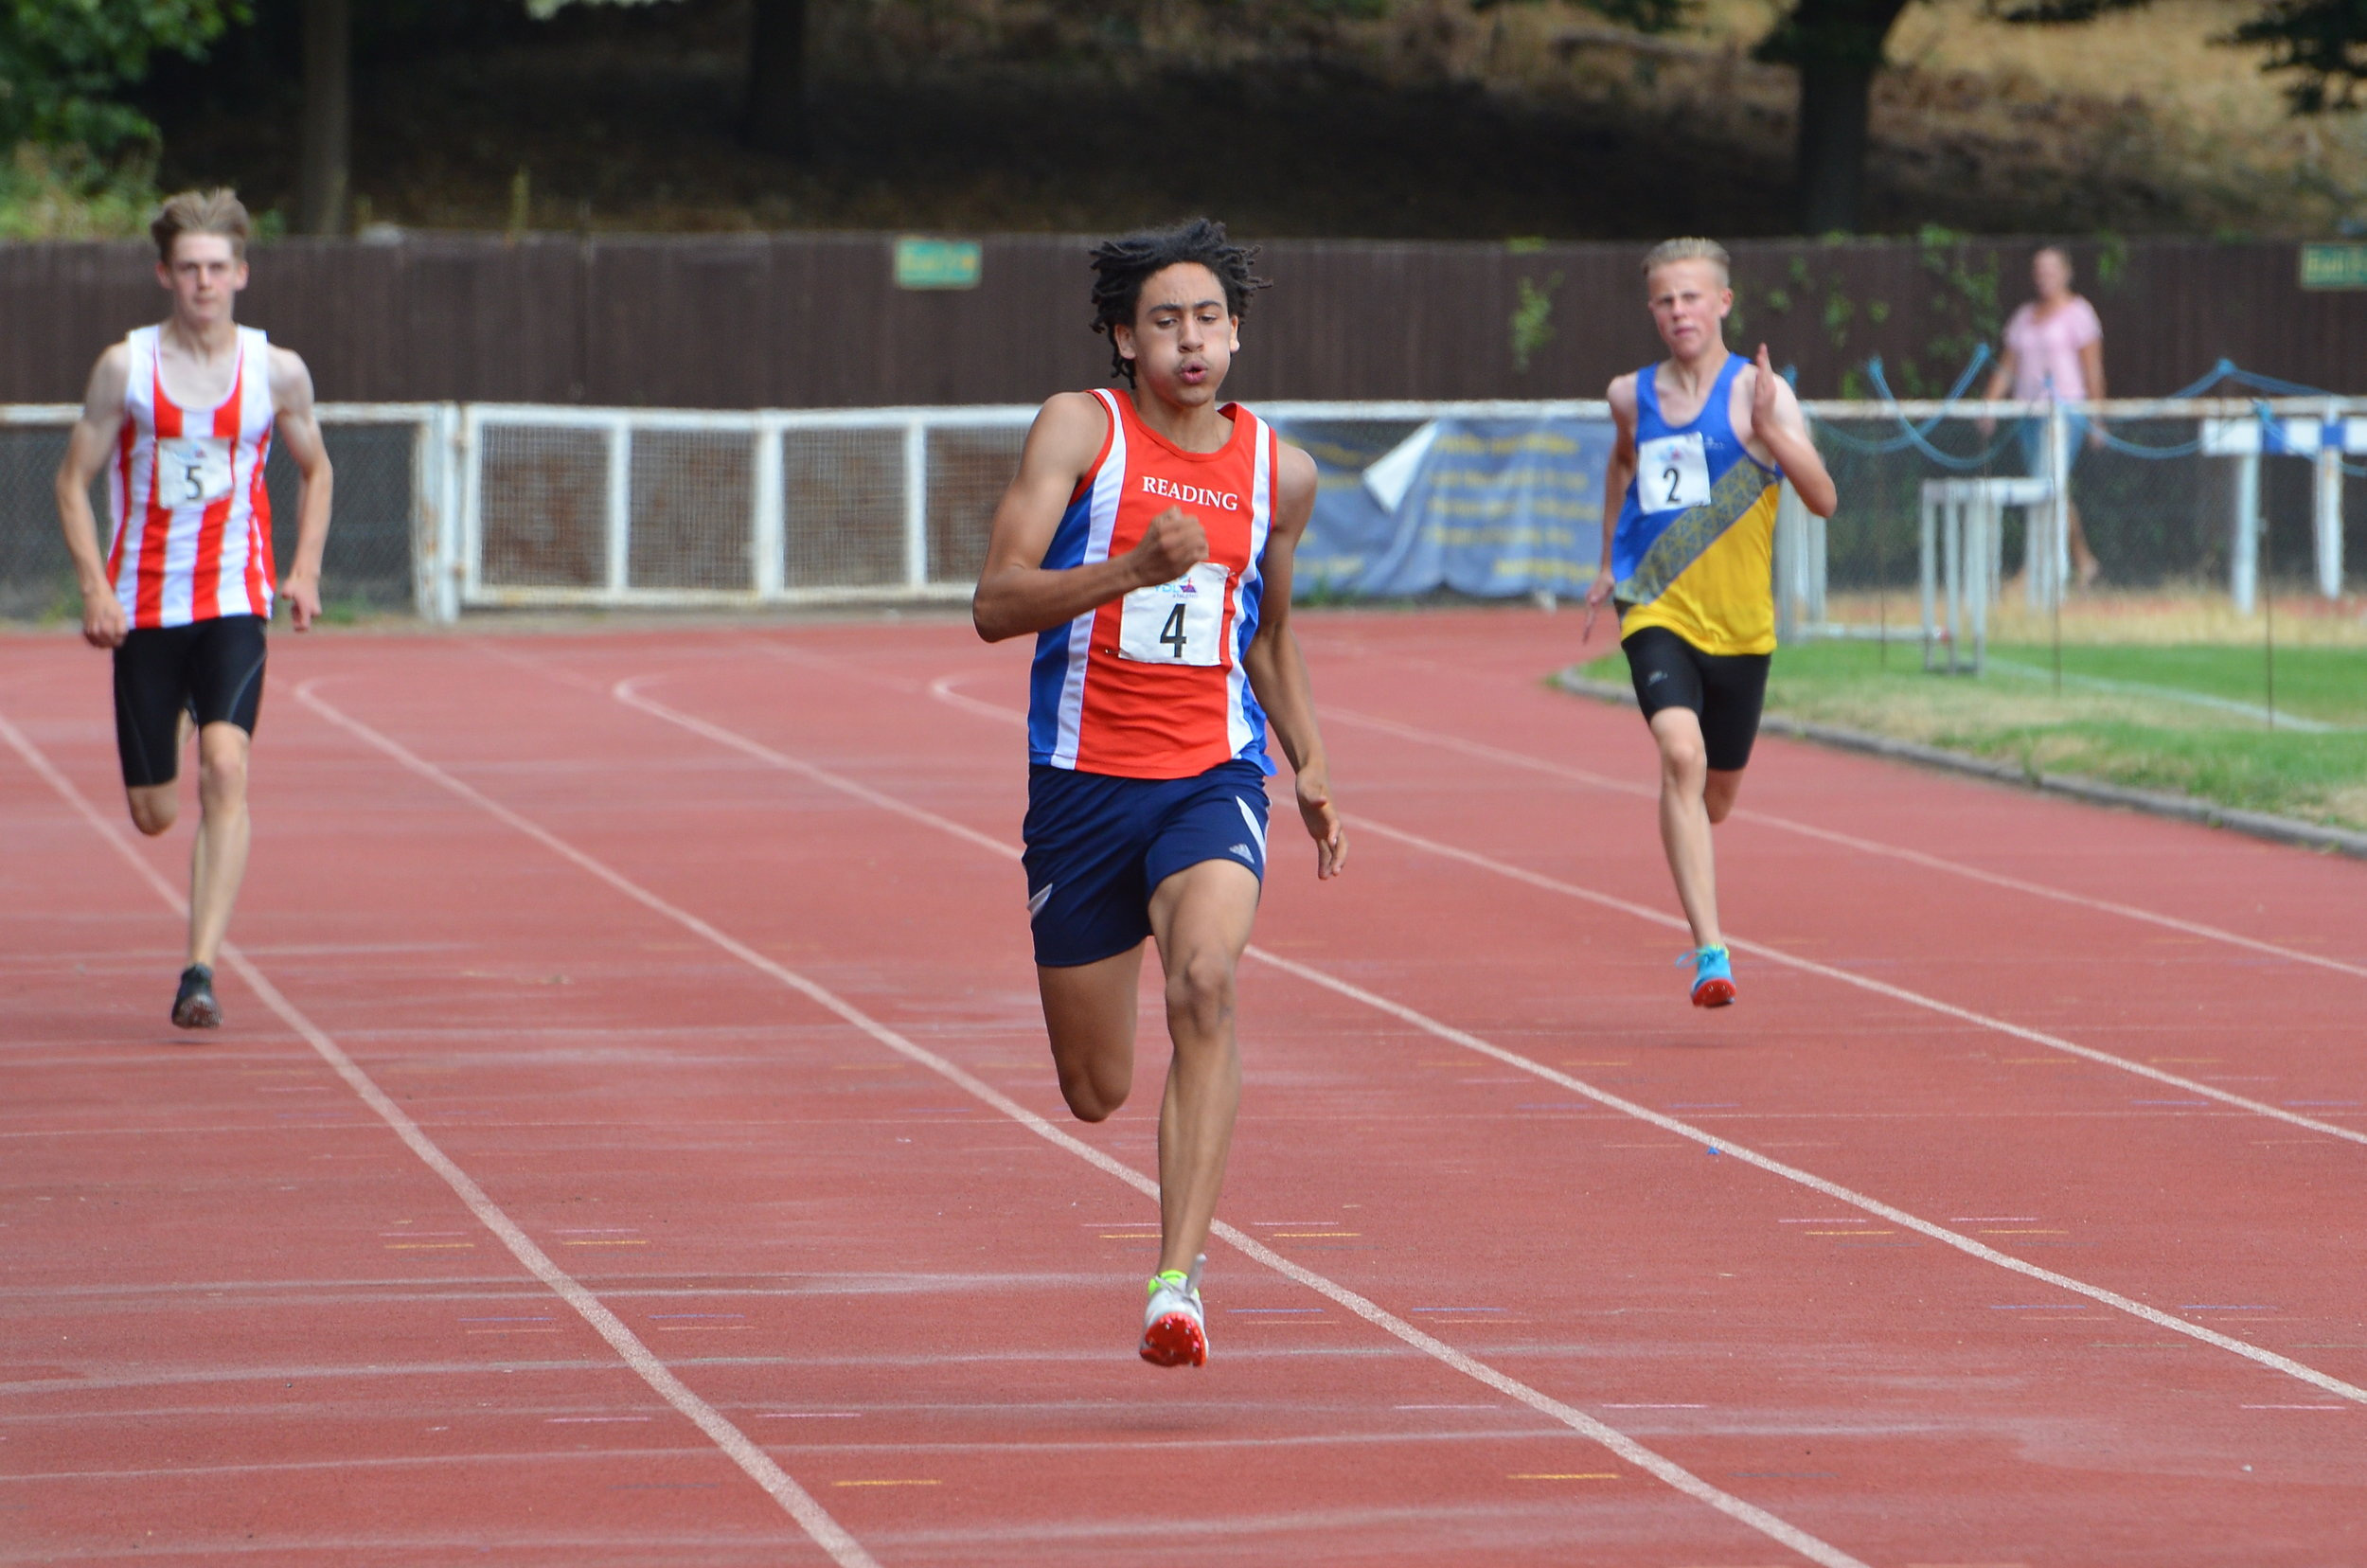 Reuben Henry-Daire equals the 35 year old U15 boys 200m club record in 23.1 secs